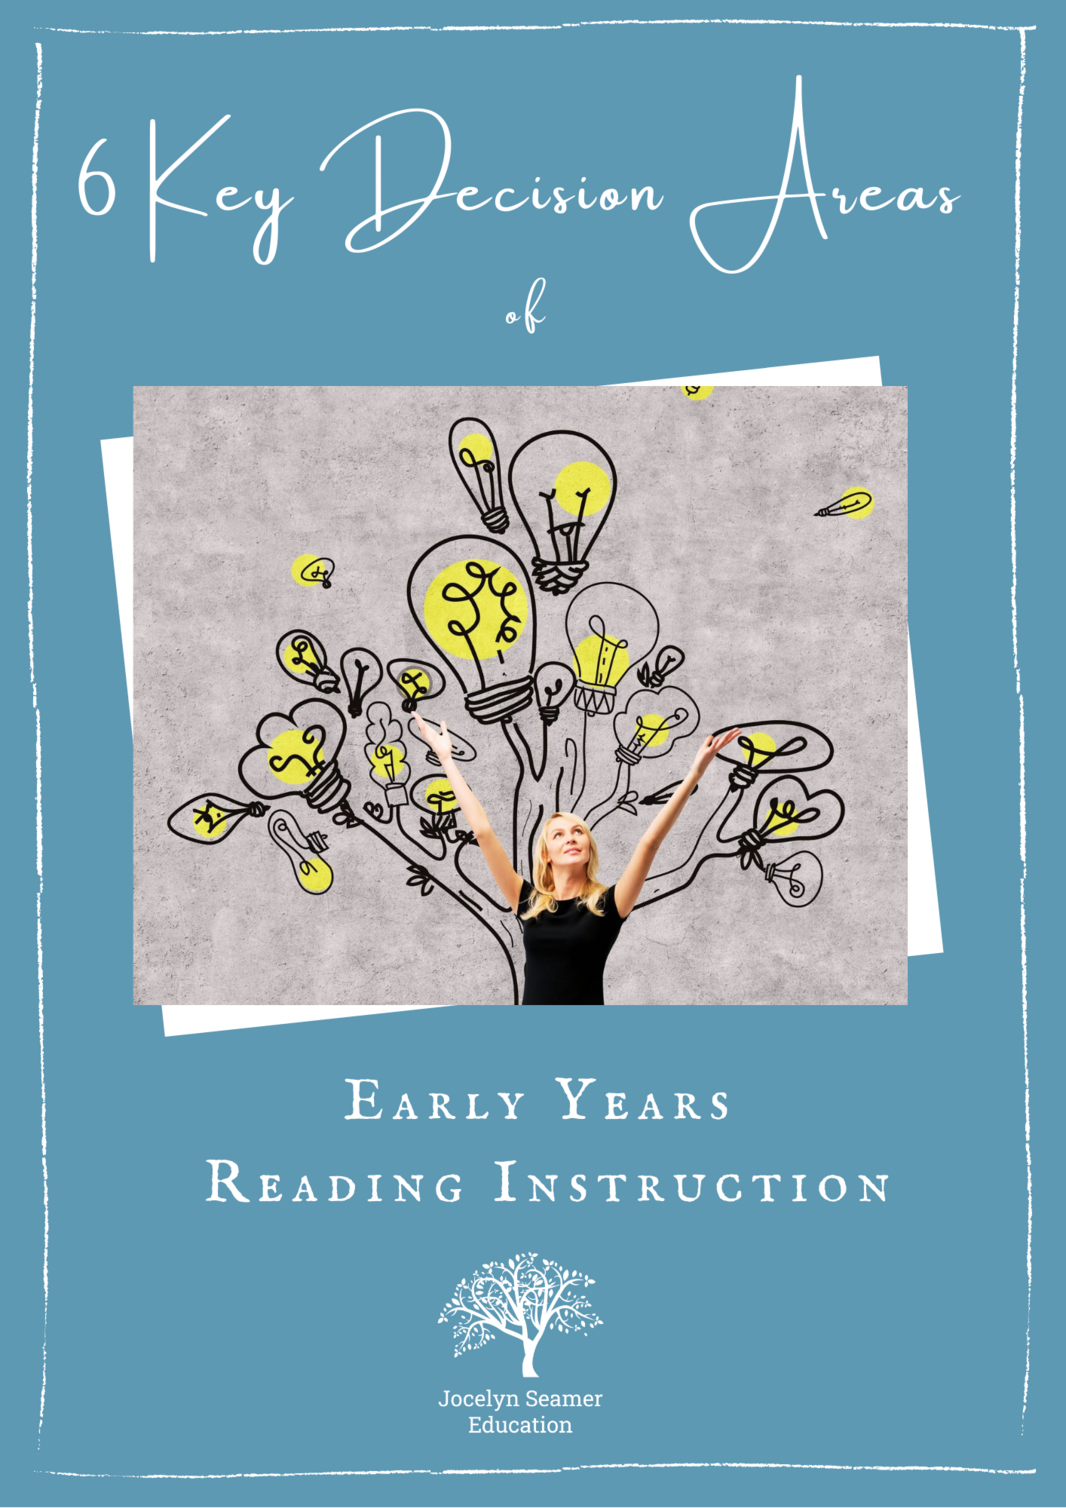 6 Key Decisions of Early Years Reading Instruction